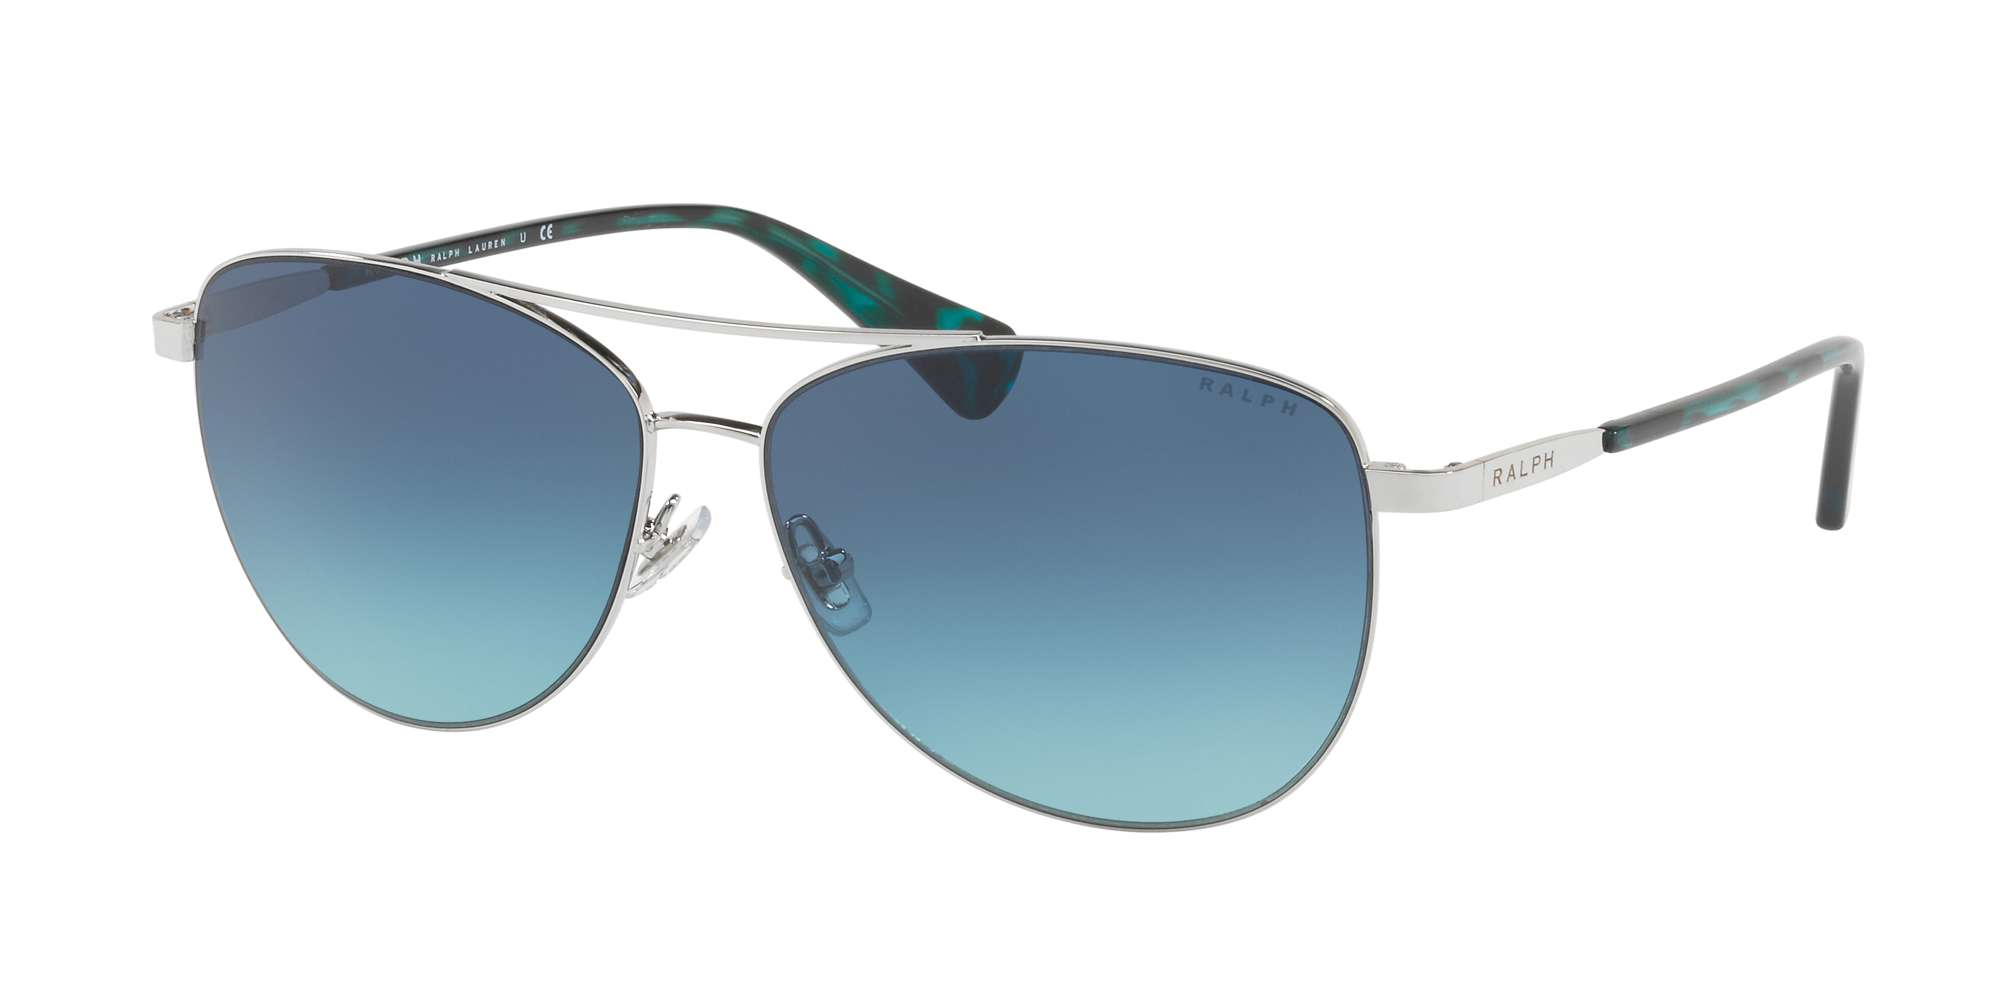 SILVER / BLUE TEAL GRADIENT lenses